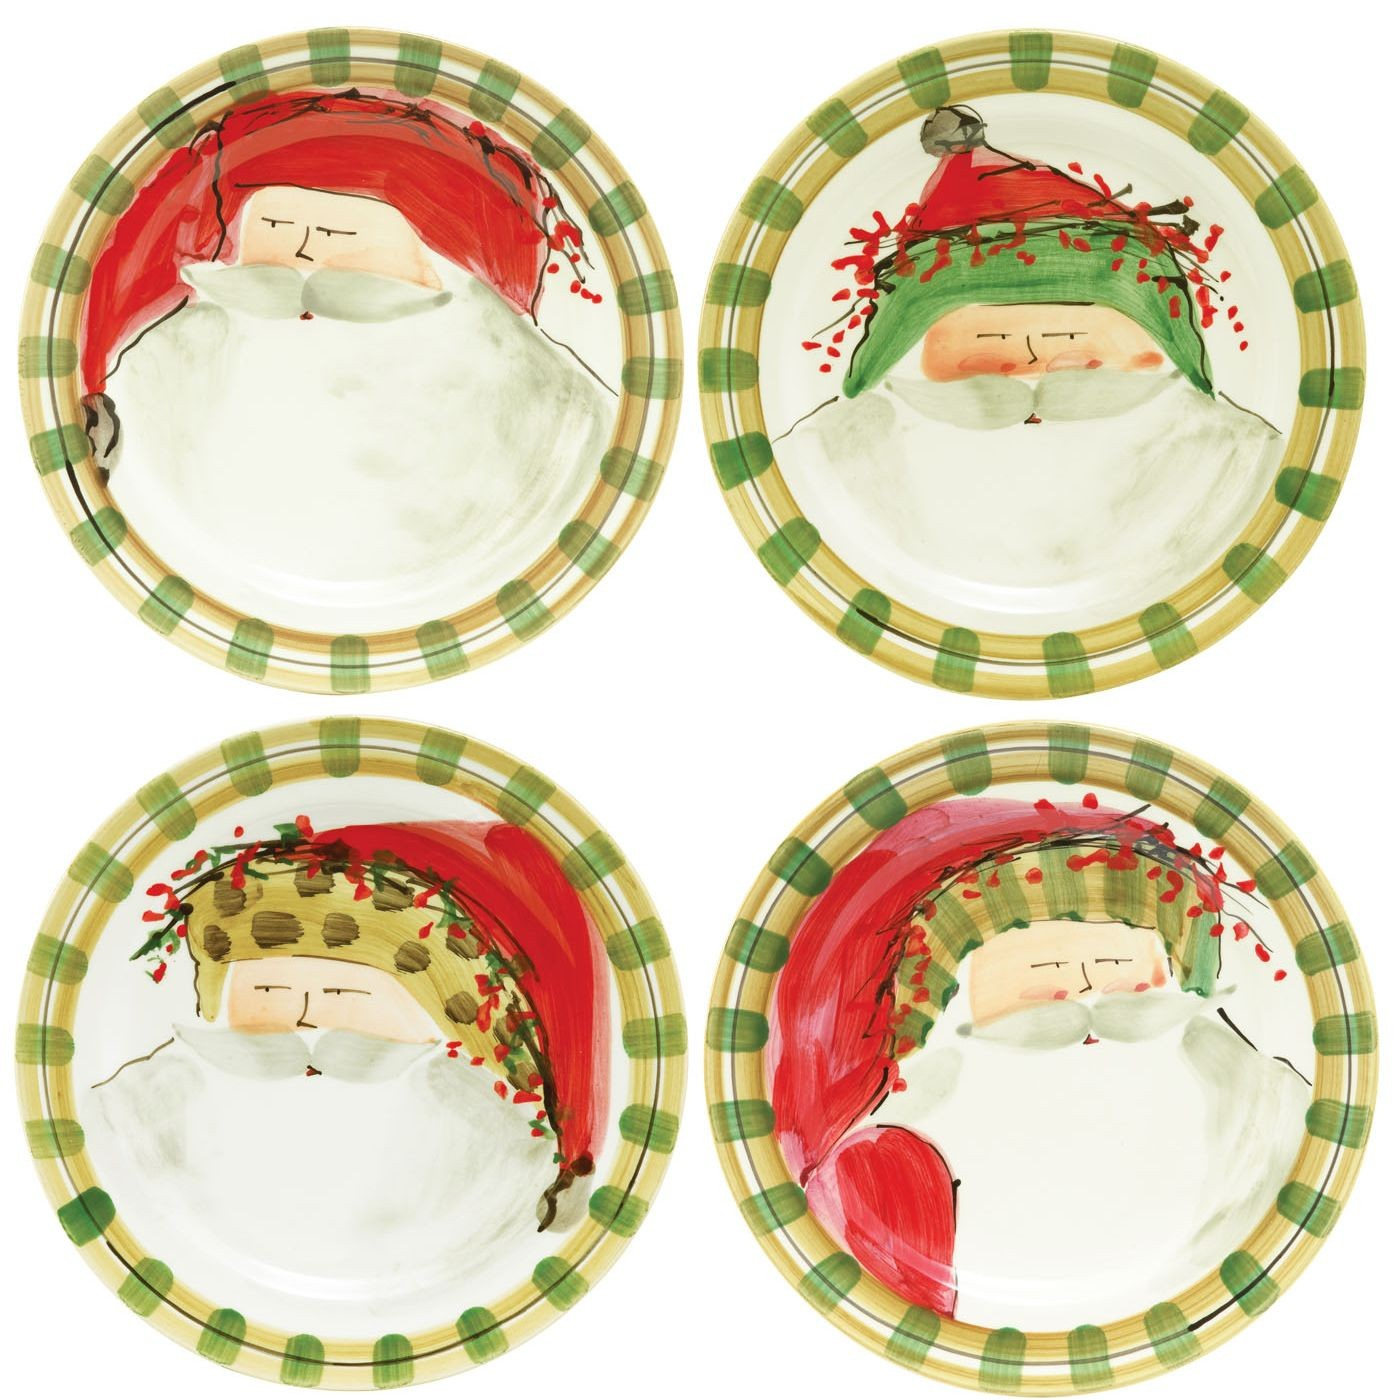 vietri-old-st.-nick-dinner-plate-set-of-four-10.75-in-osn-7800.jpg